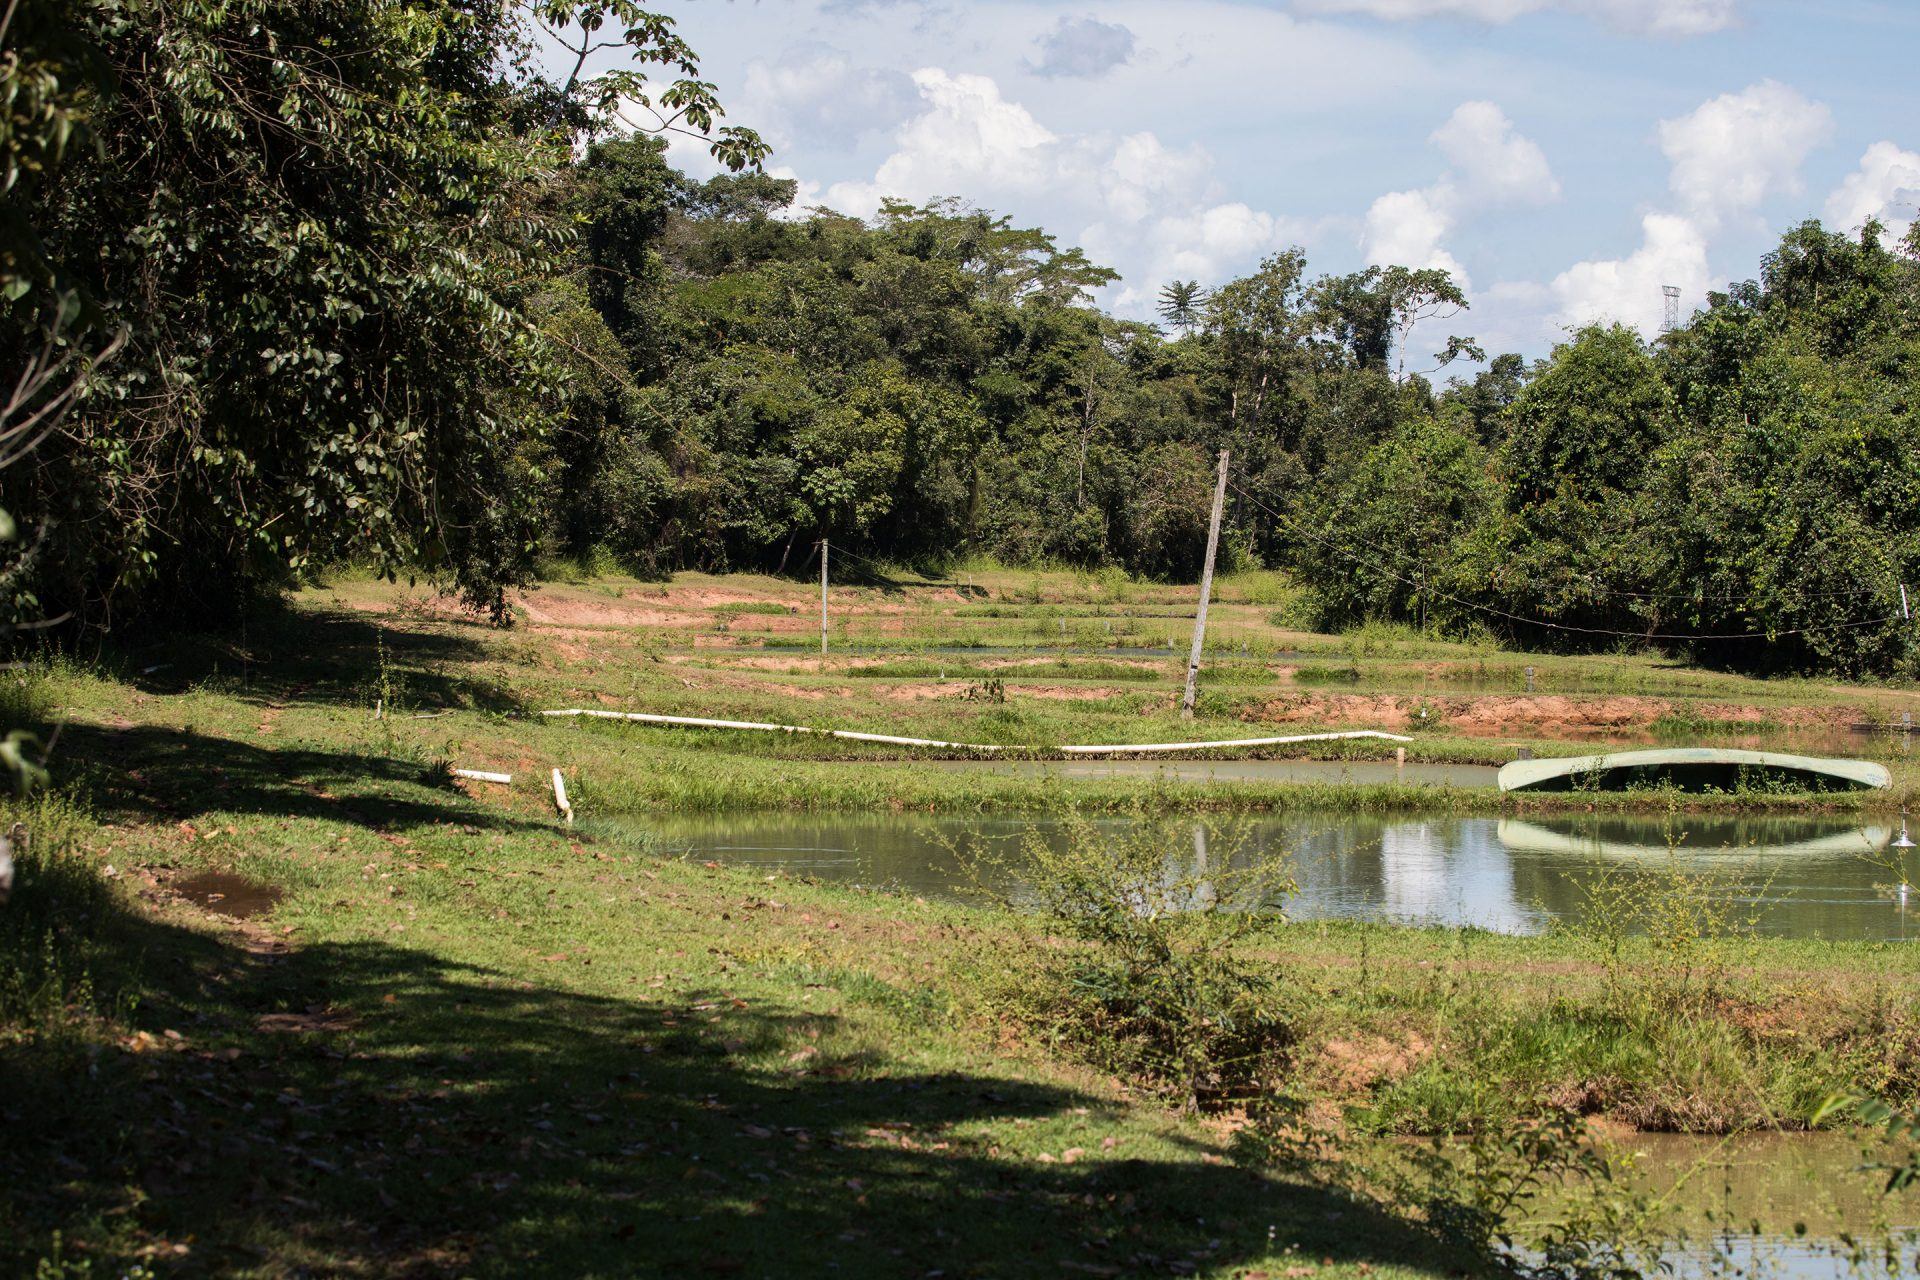 The fish farm at the Jardim Amazonia.